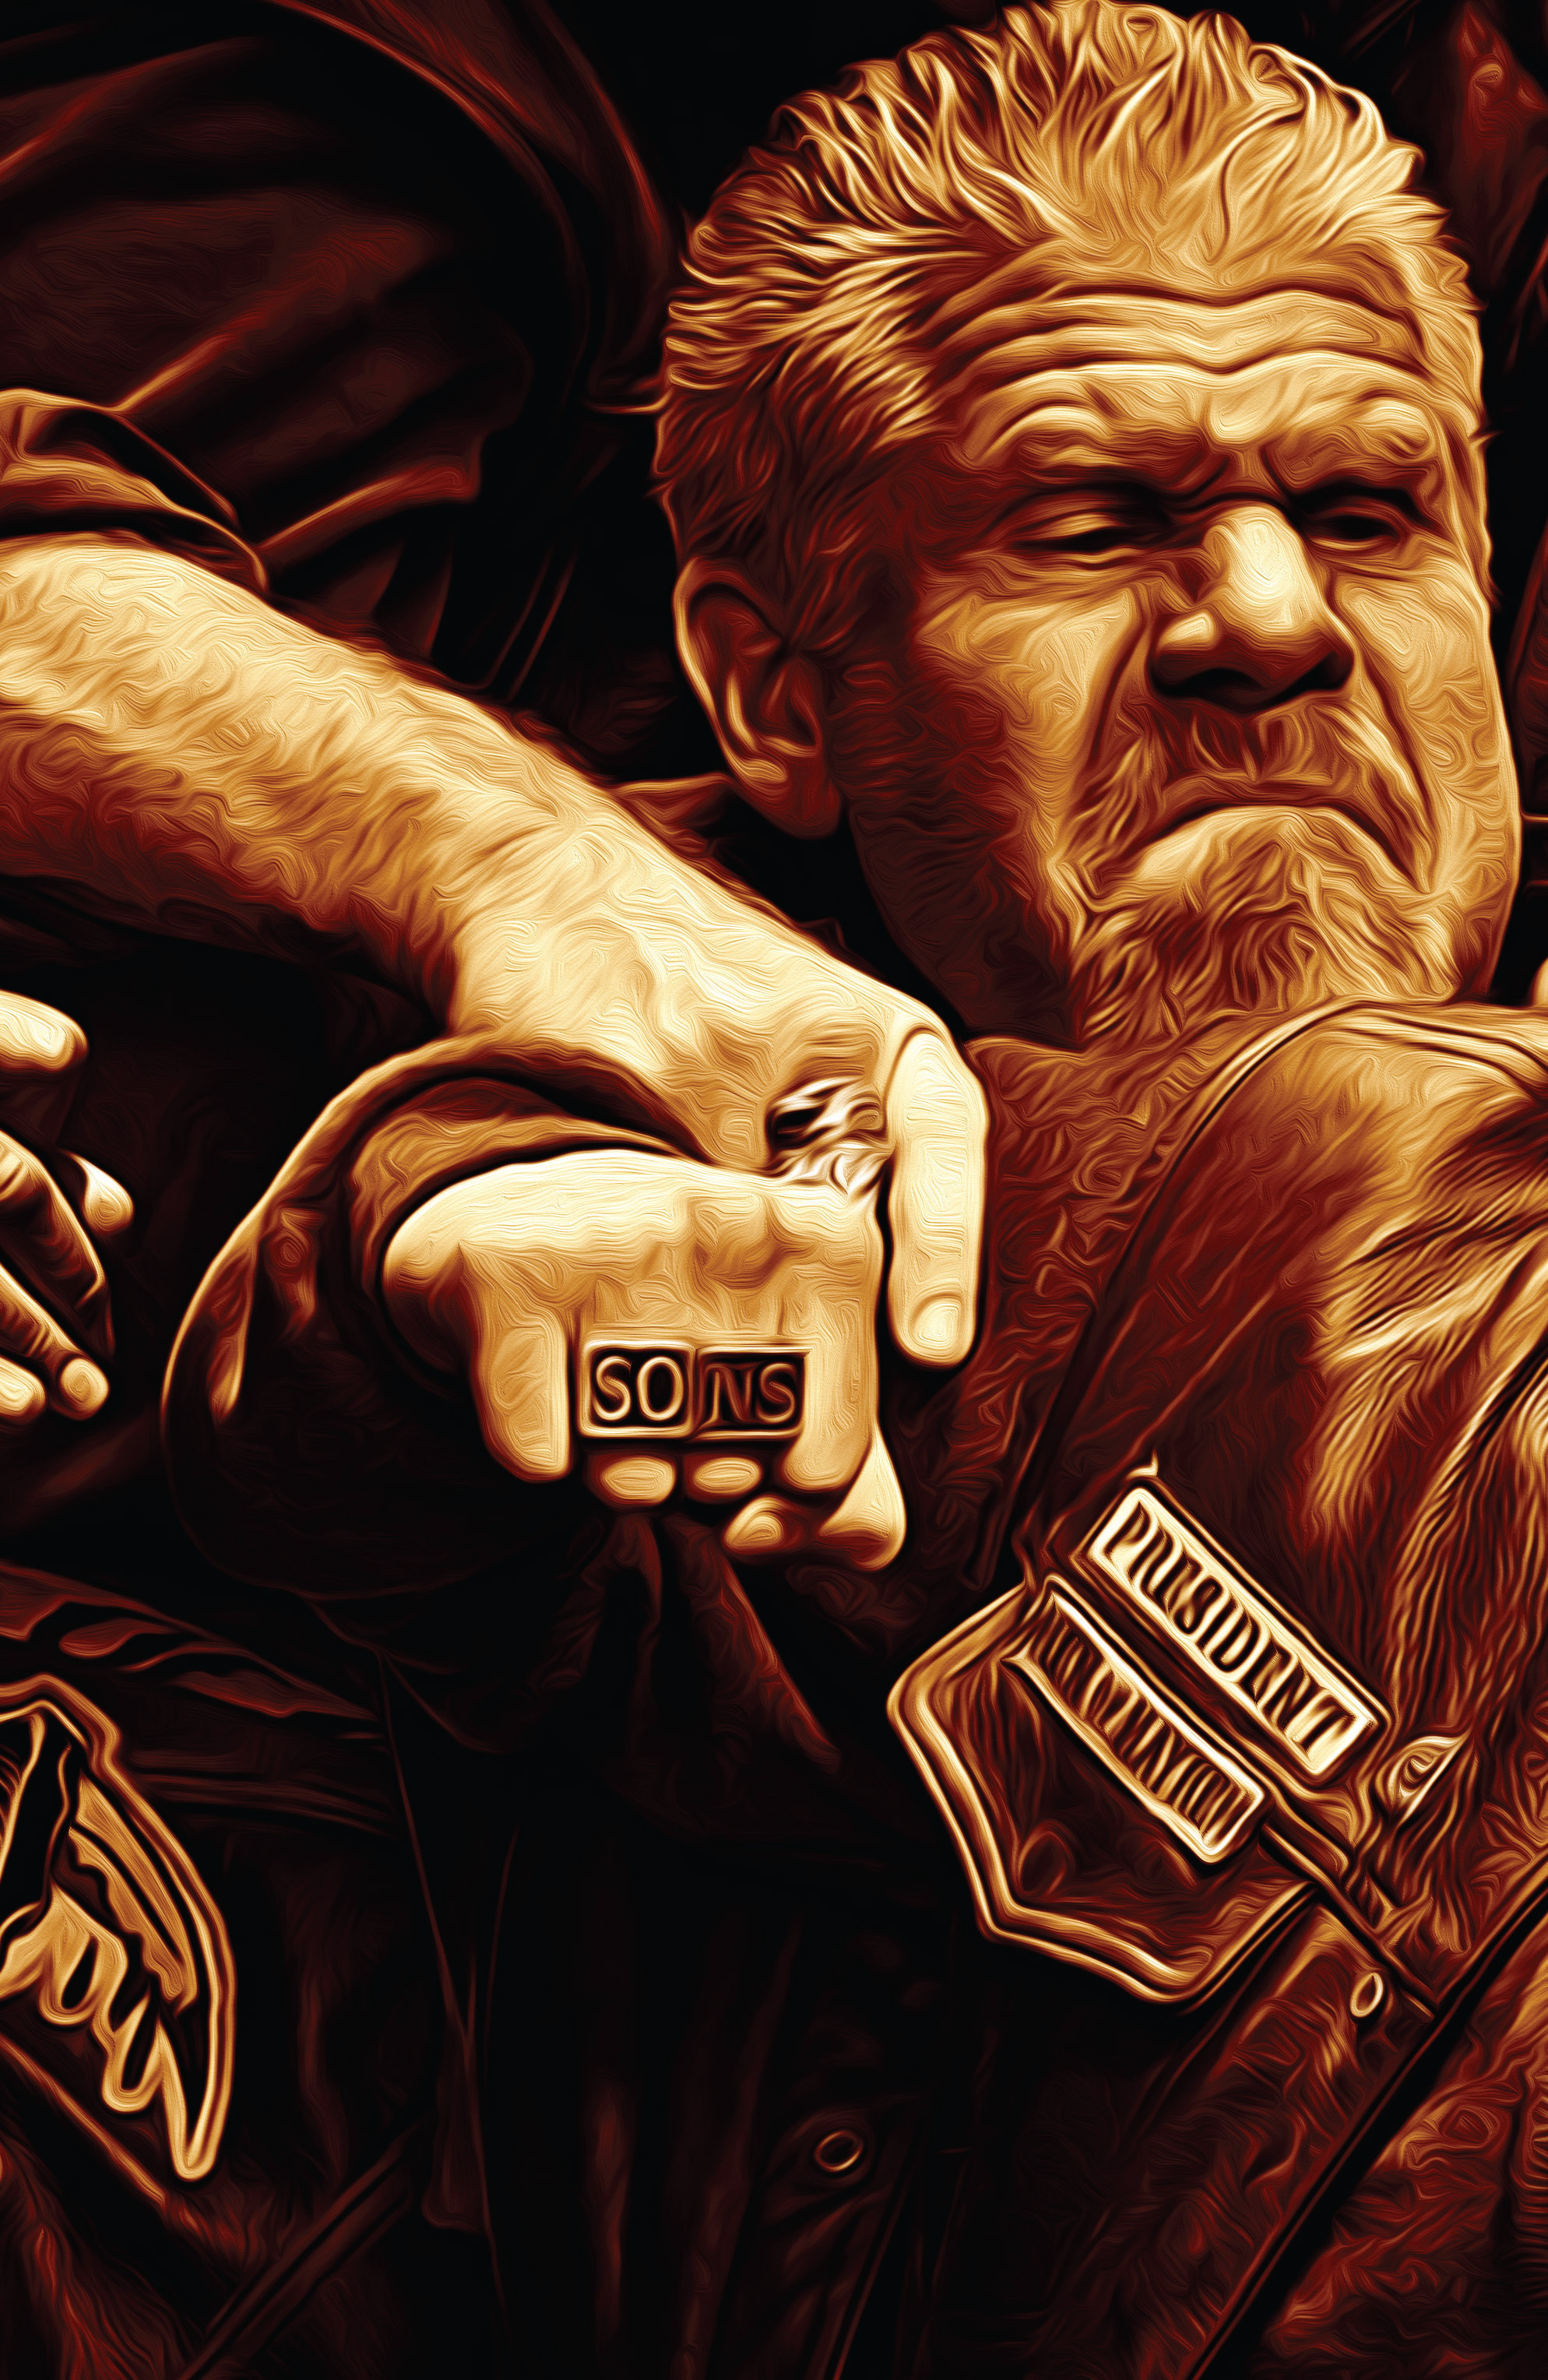 Read online Sons of Anarchy comic -  Issue #4 - 2